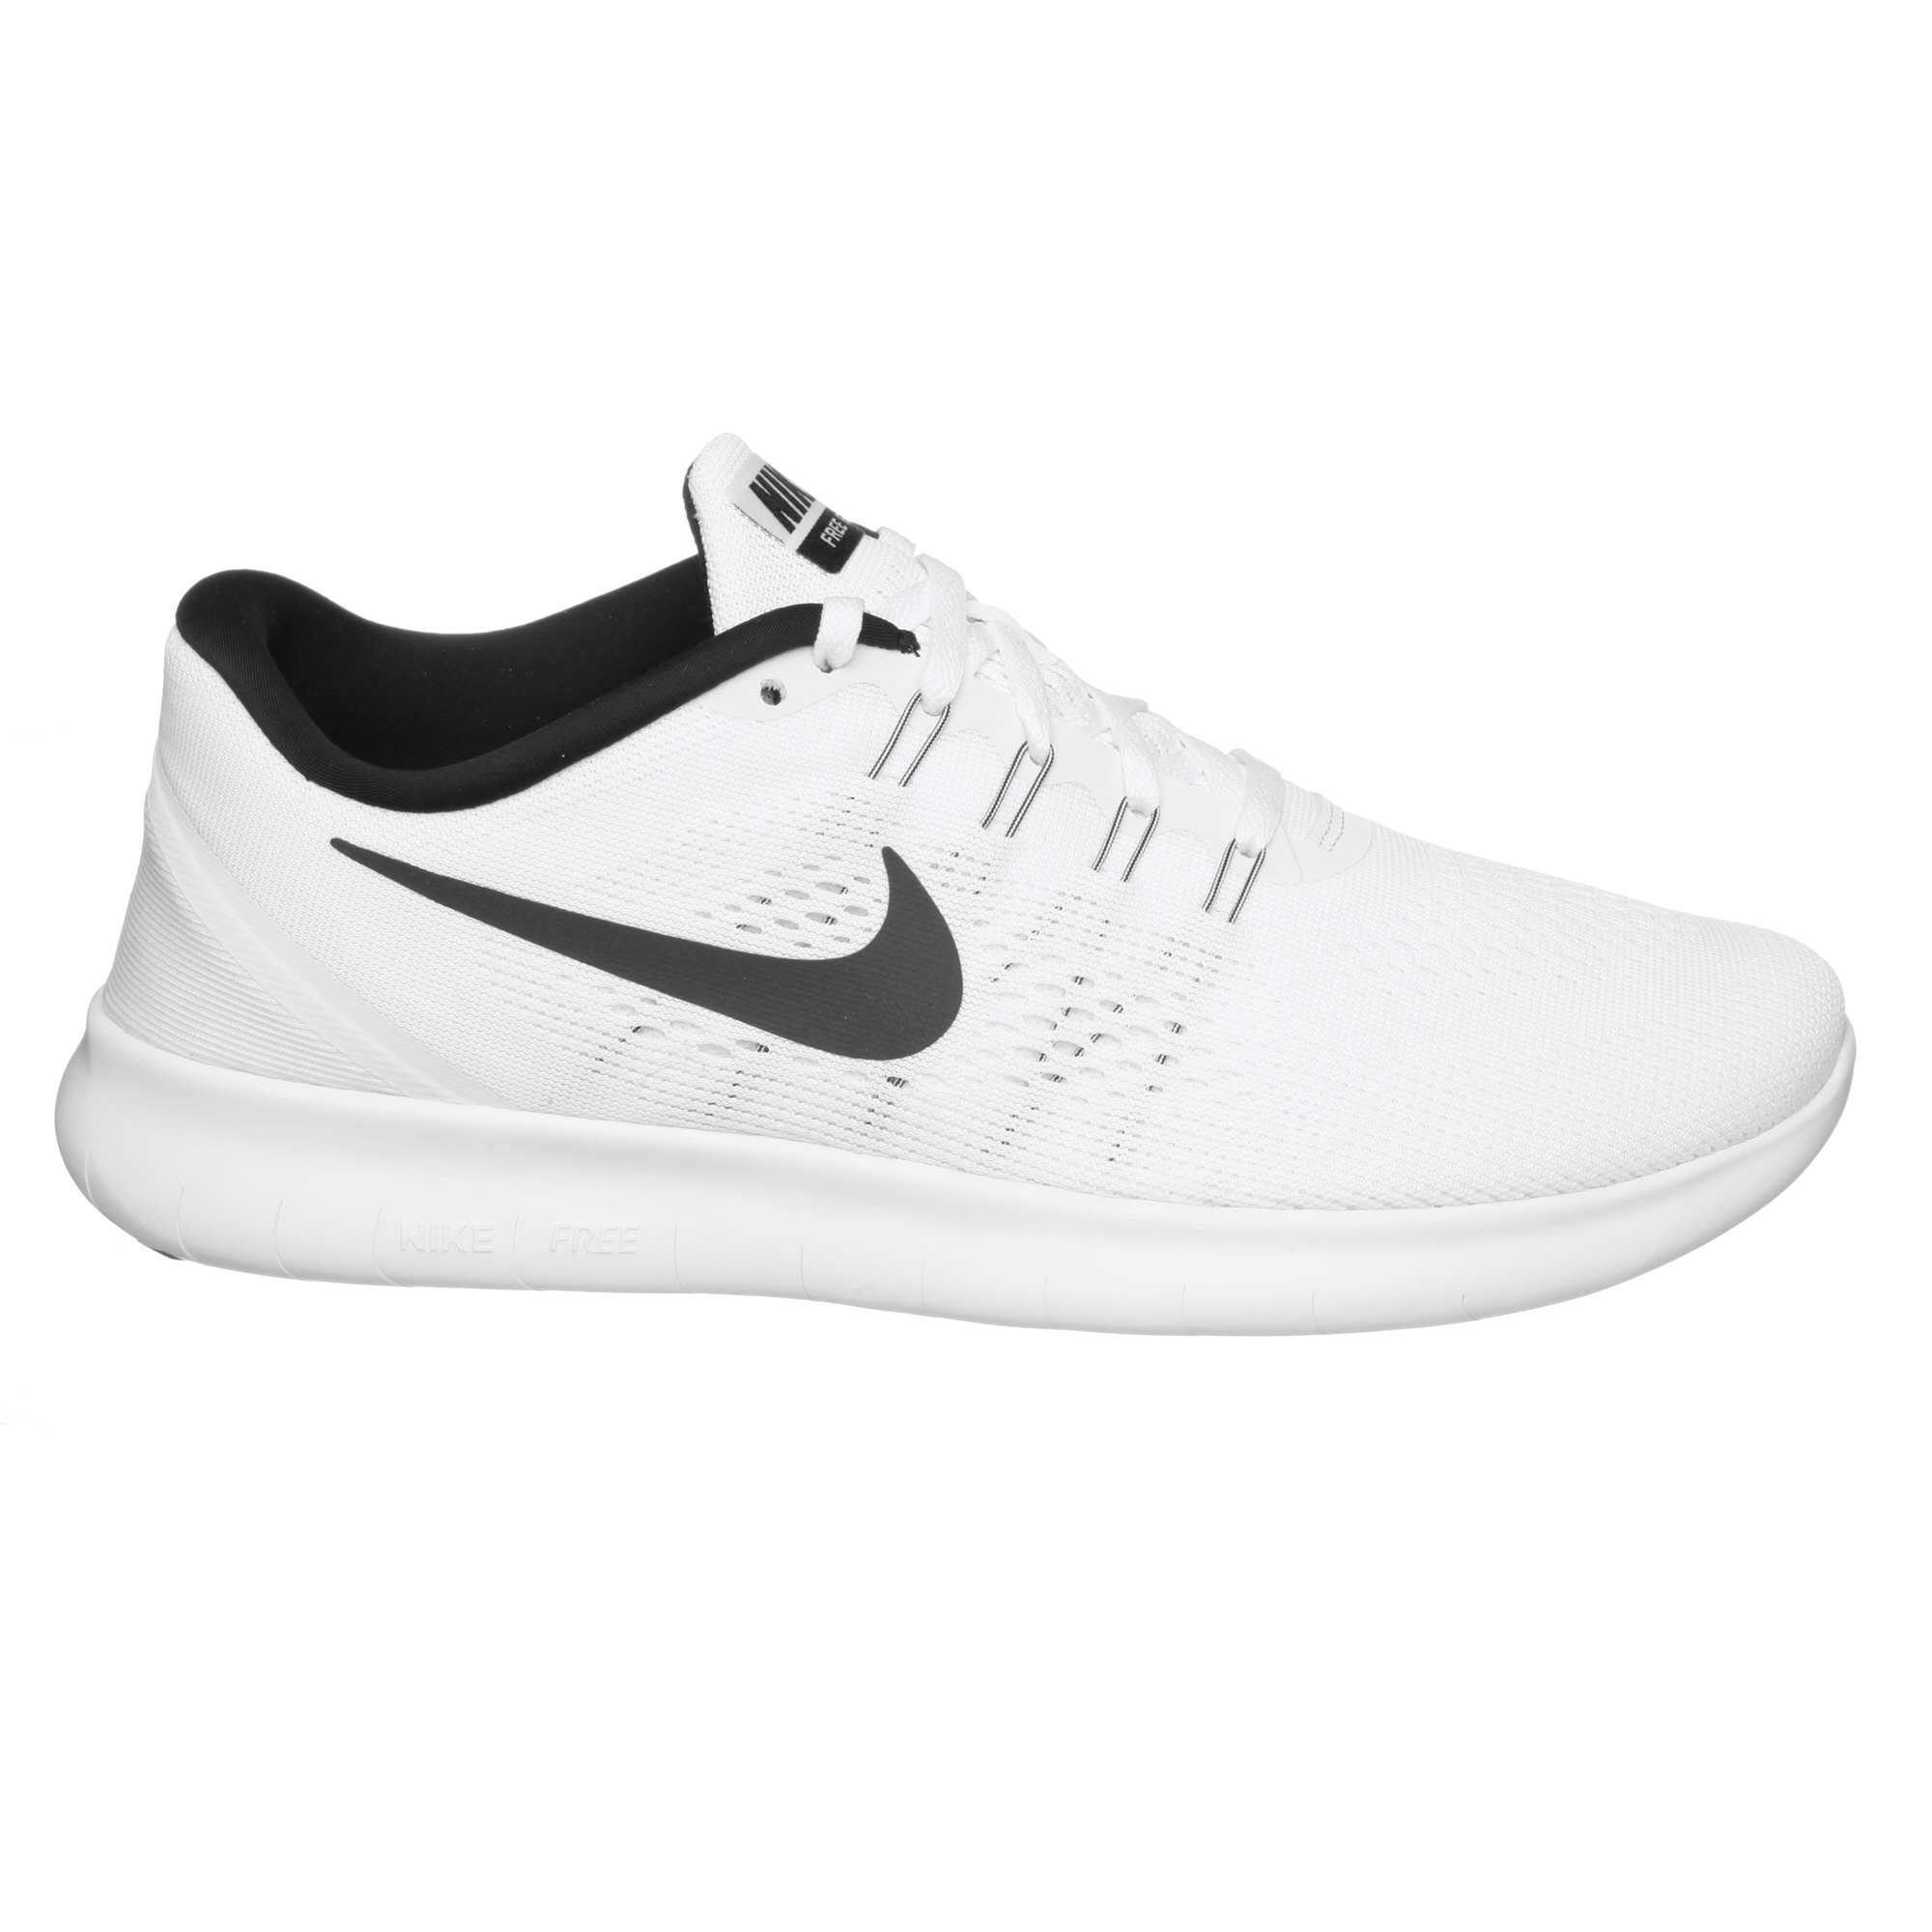 new arrival 93507 bcd89 Nike Womens Free RN Running Shoe